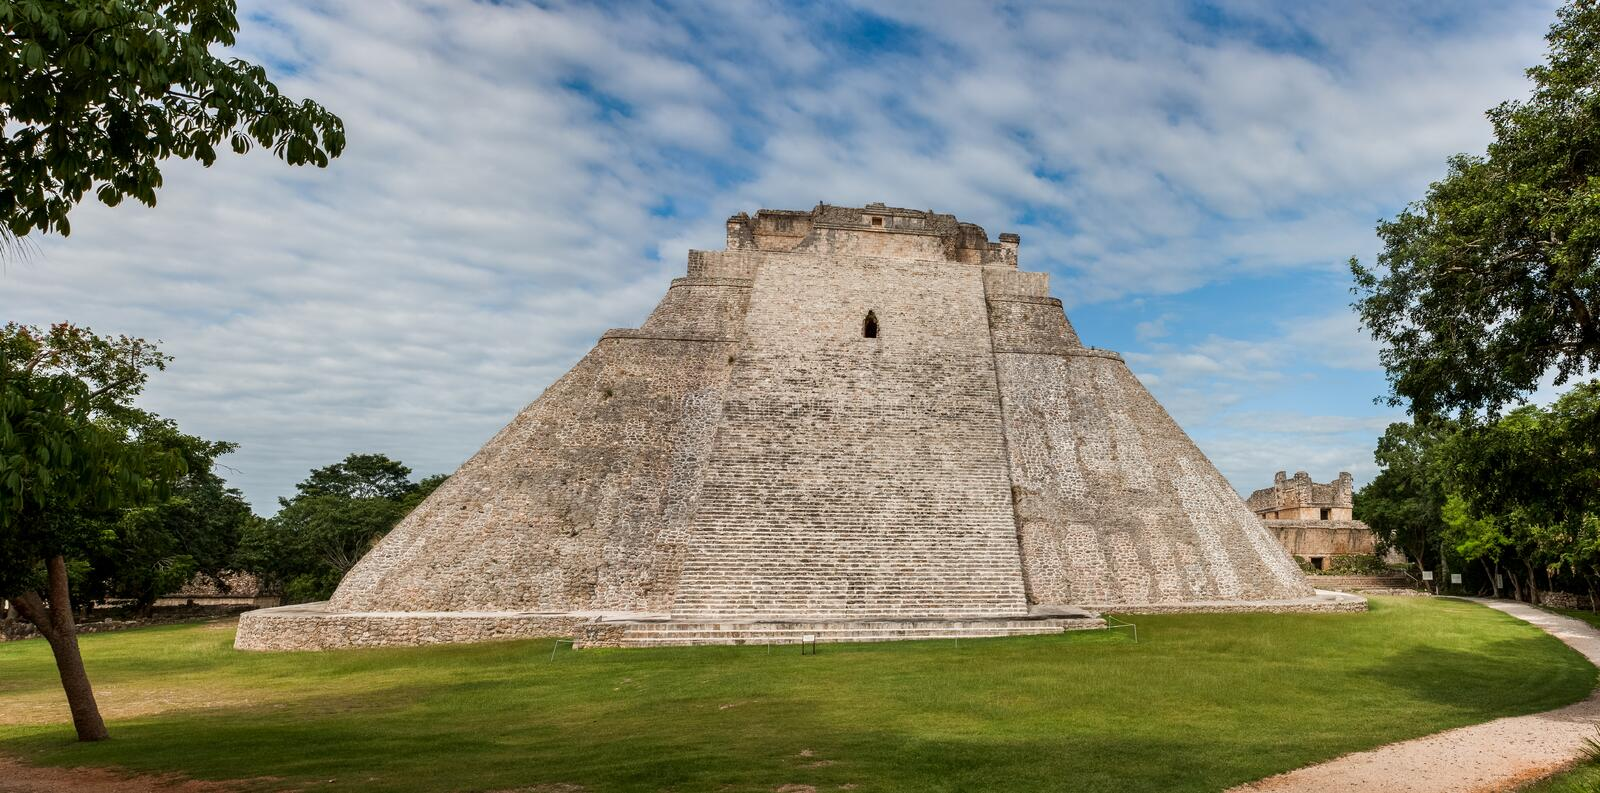 The piramyd of the wizard at the Uxmal archaeological site, Yucatan, Mexico. royalty free stock photo